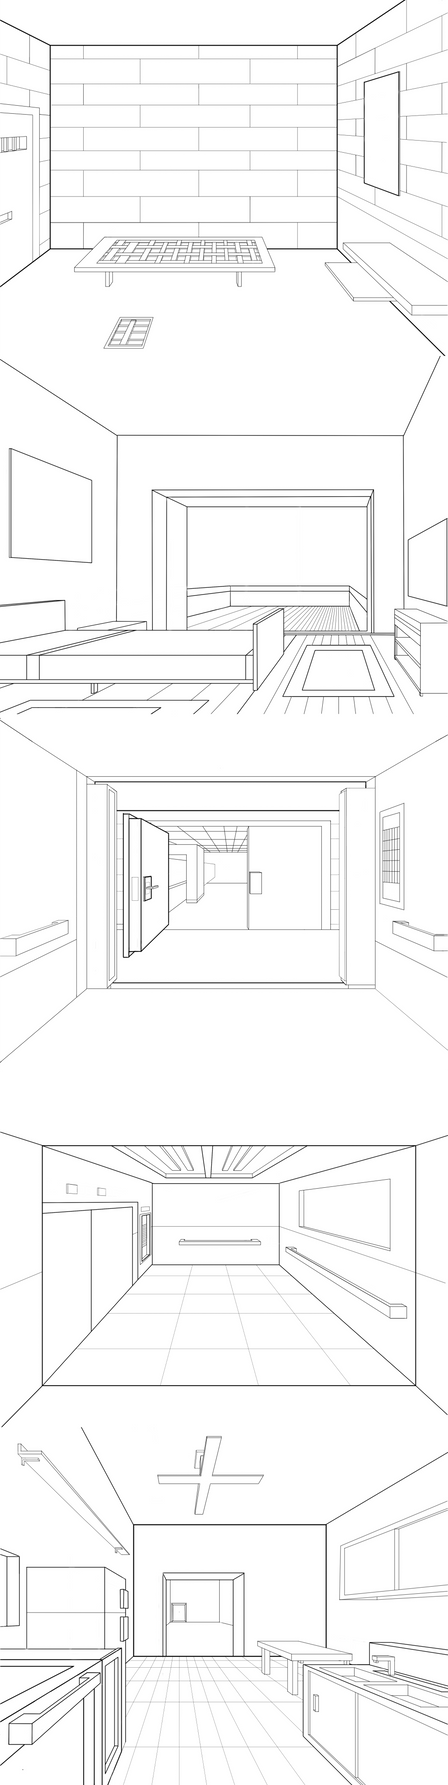 Point Perspective Room Below Eyelevel